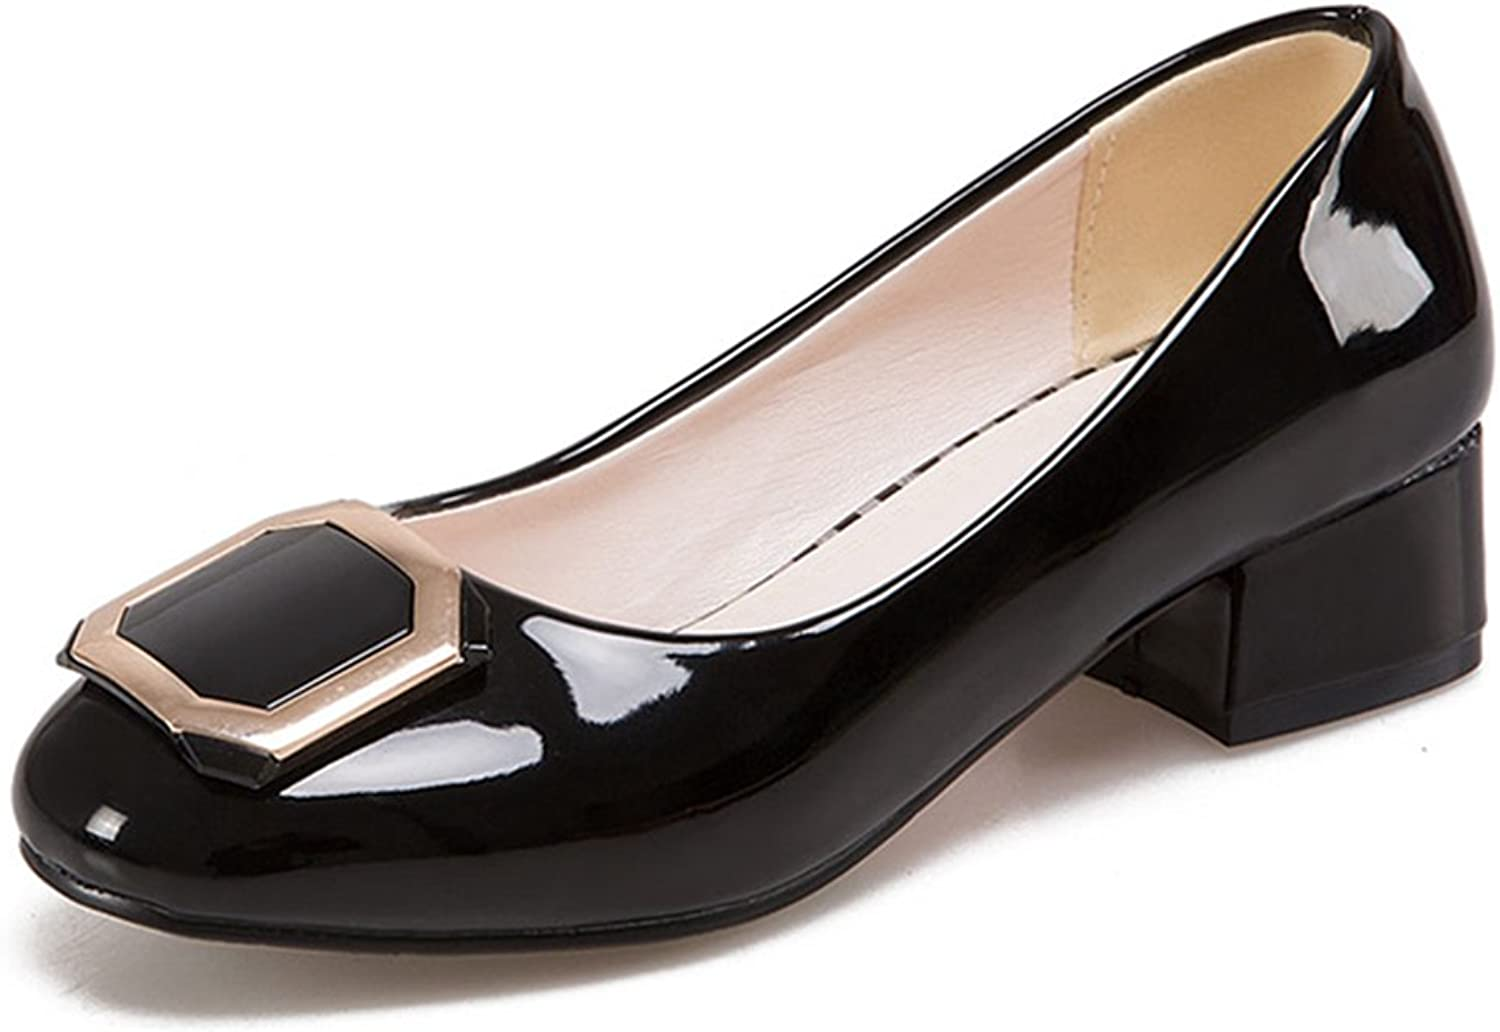 York Zhu Women Pumps, Summer Concise Buckle Slip-on Round Toe Square Heel shoes